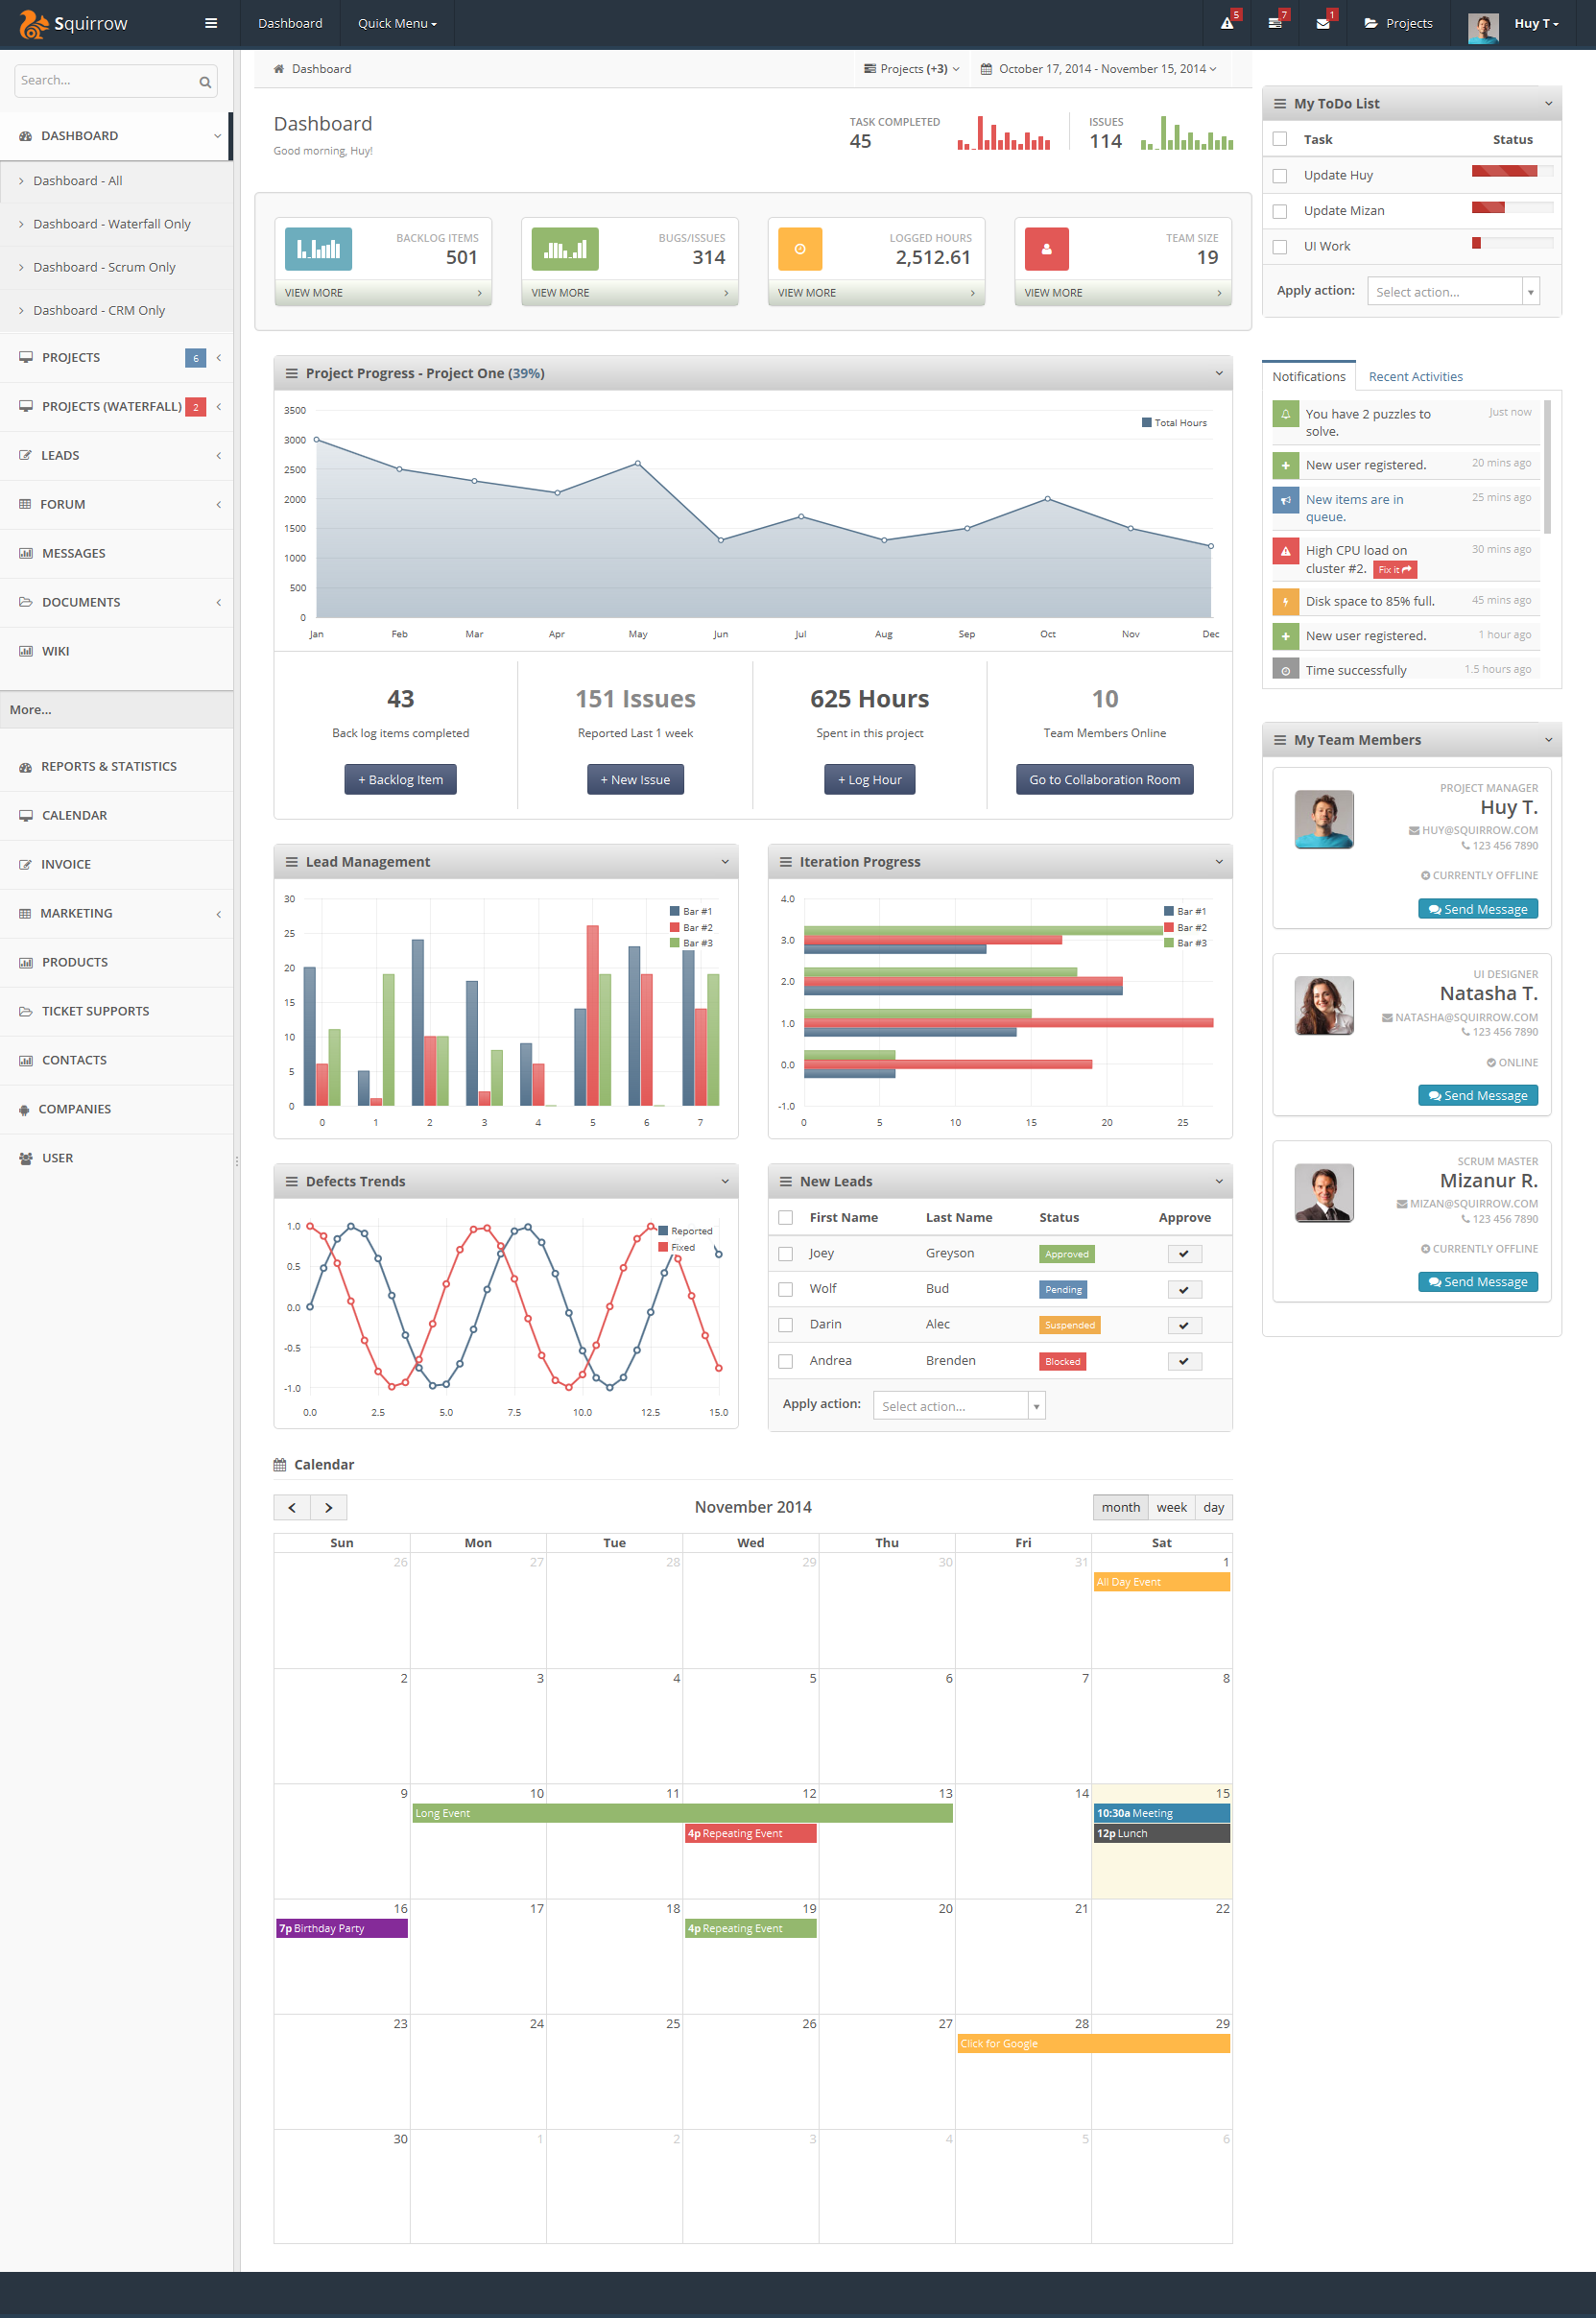 crm project management Buy segments - crm & project management wordpress theme by codevisionthemes on themeforest official theme &amp plugin documentation before purchase please don't forget to check documentation some of new f.